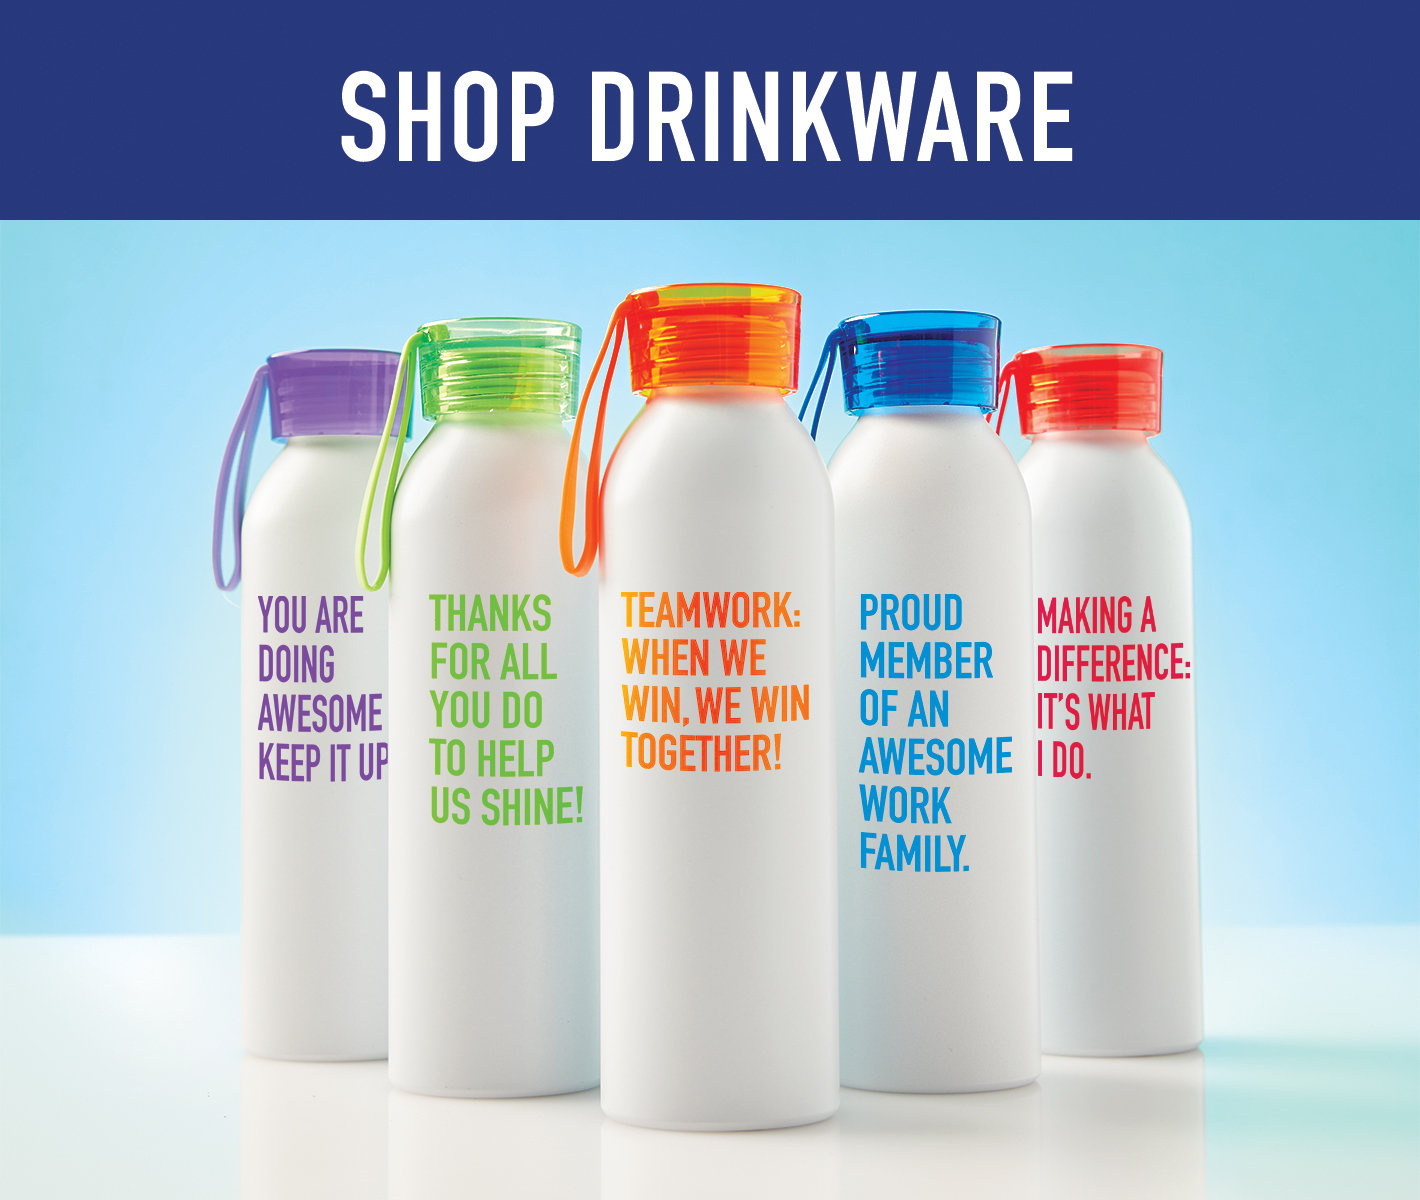 Shop drinkware at Baudville.com.